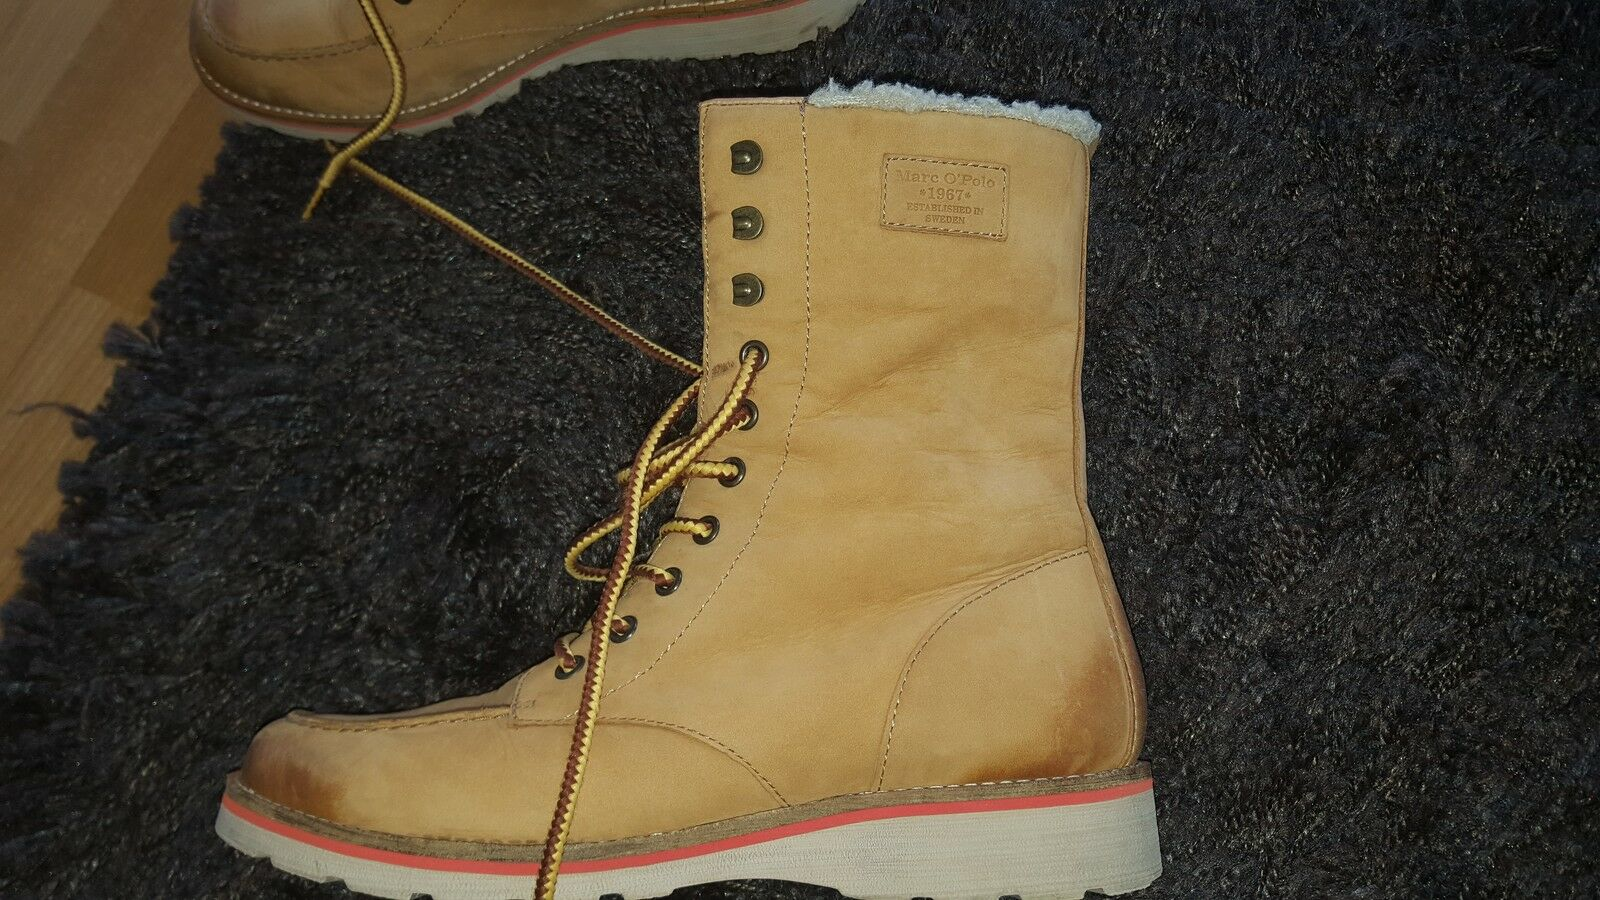 Marc Fell O Polo Winterboots mit Fell Marc cognacfarben Größe 8 NP 533e9c